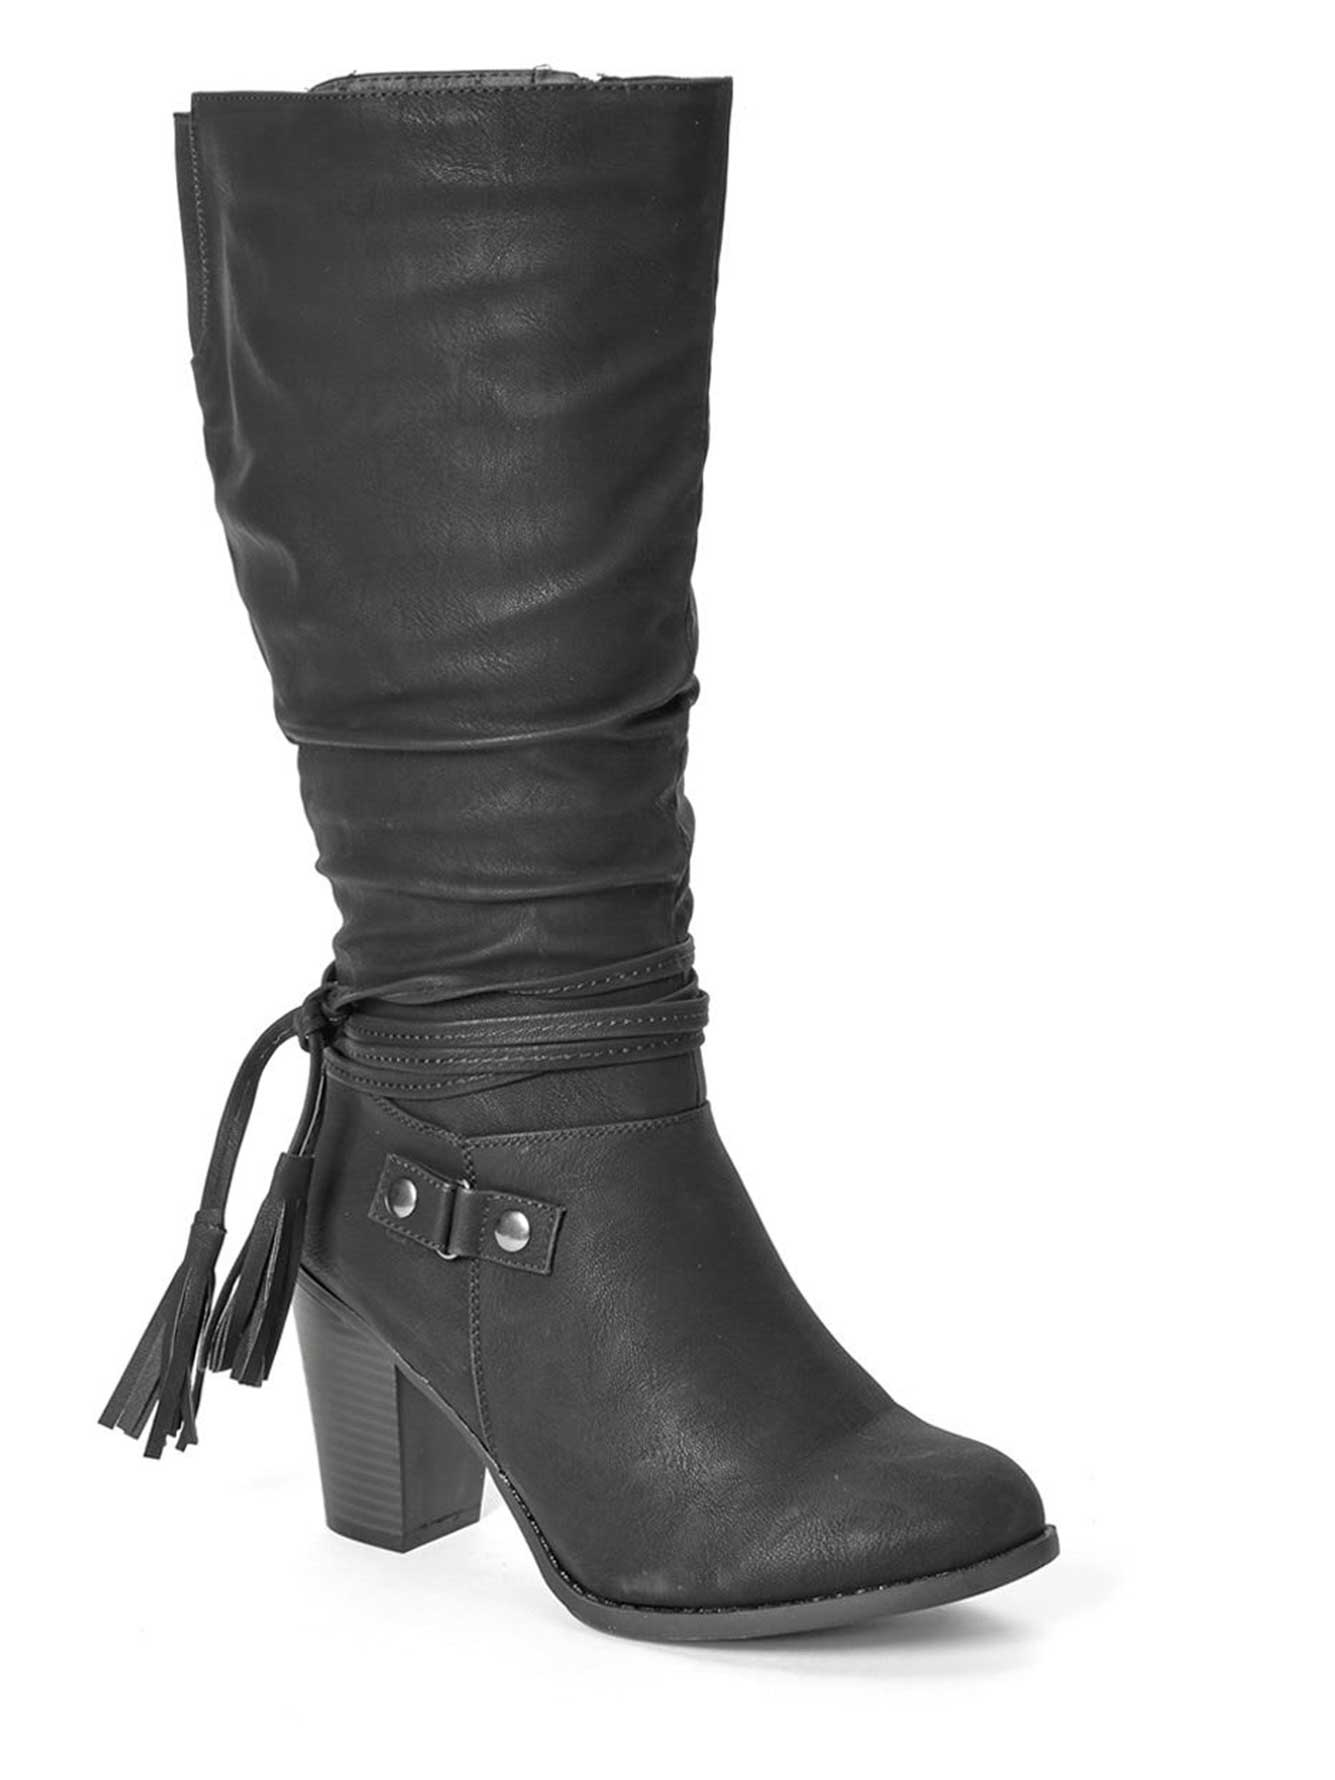 8adc8569eb4 Wide-Width Tall High Heel Boots